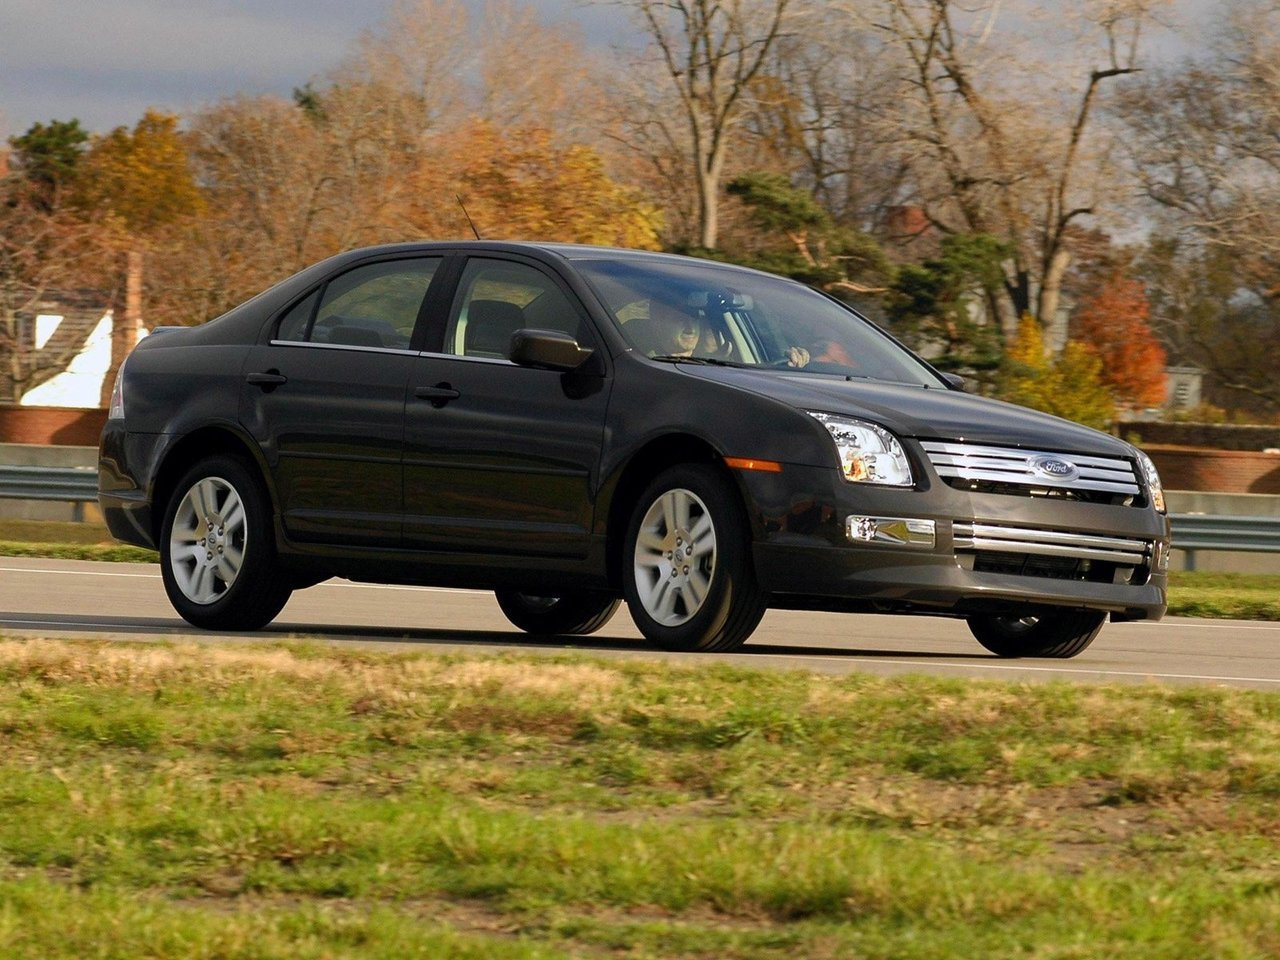 Автомобиль Ford Fusion (North America)